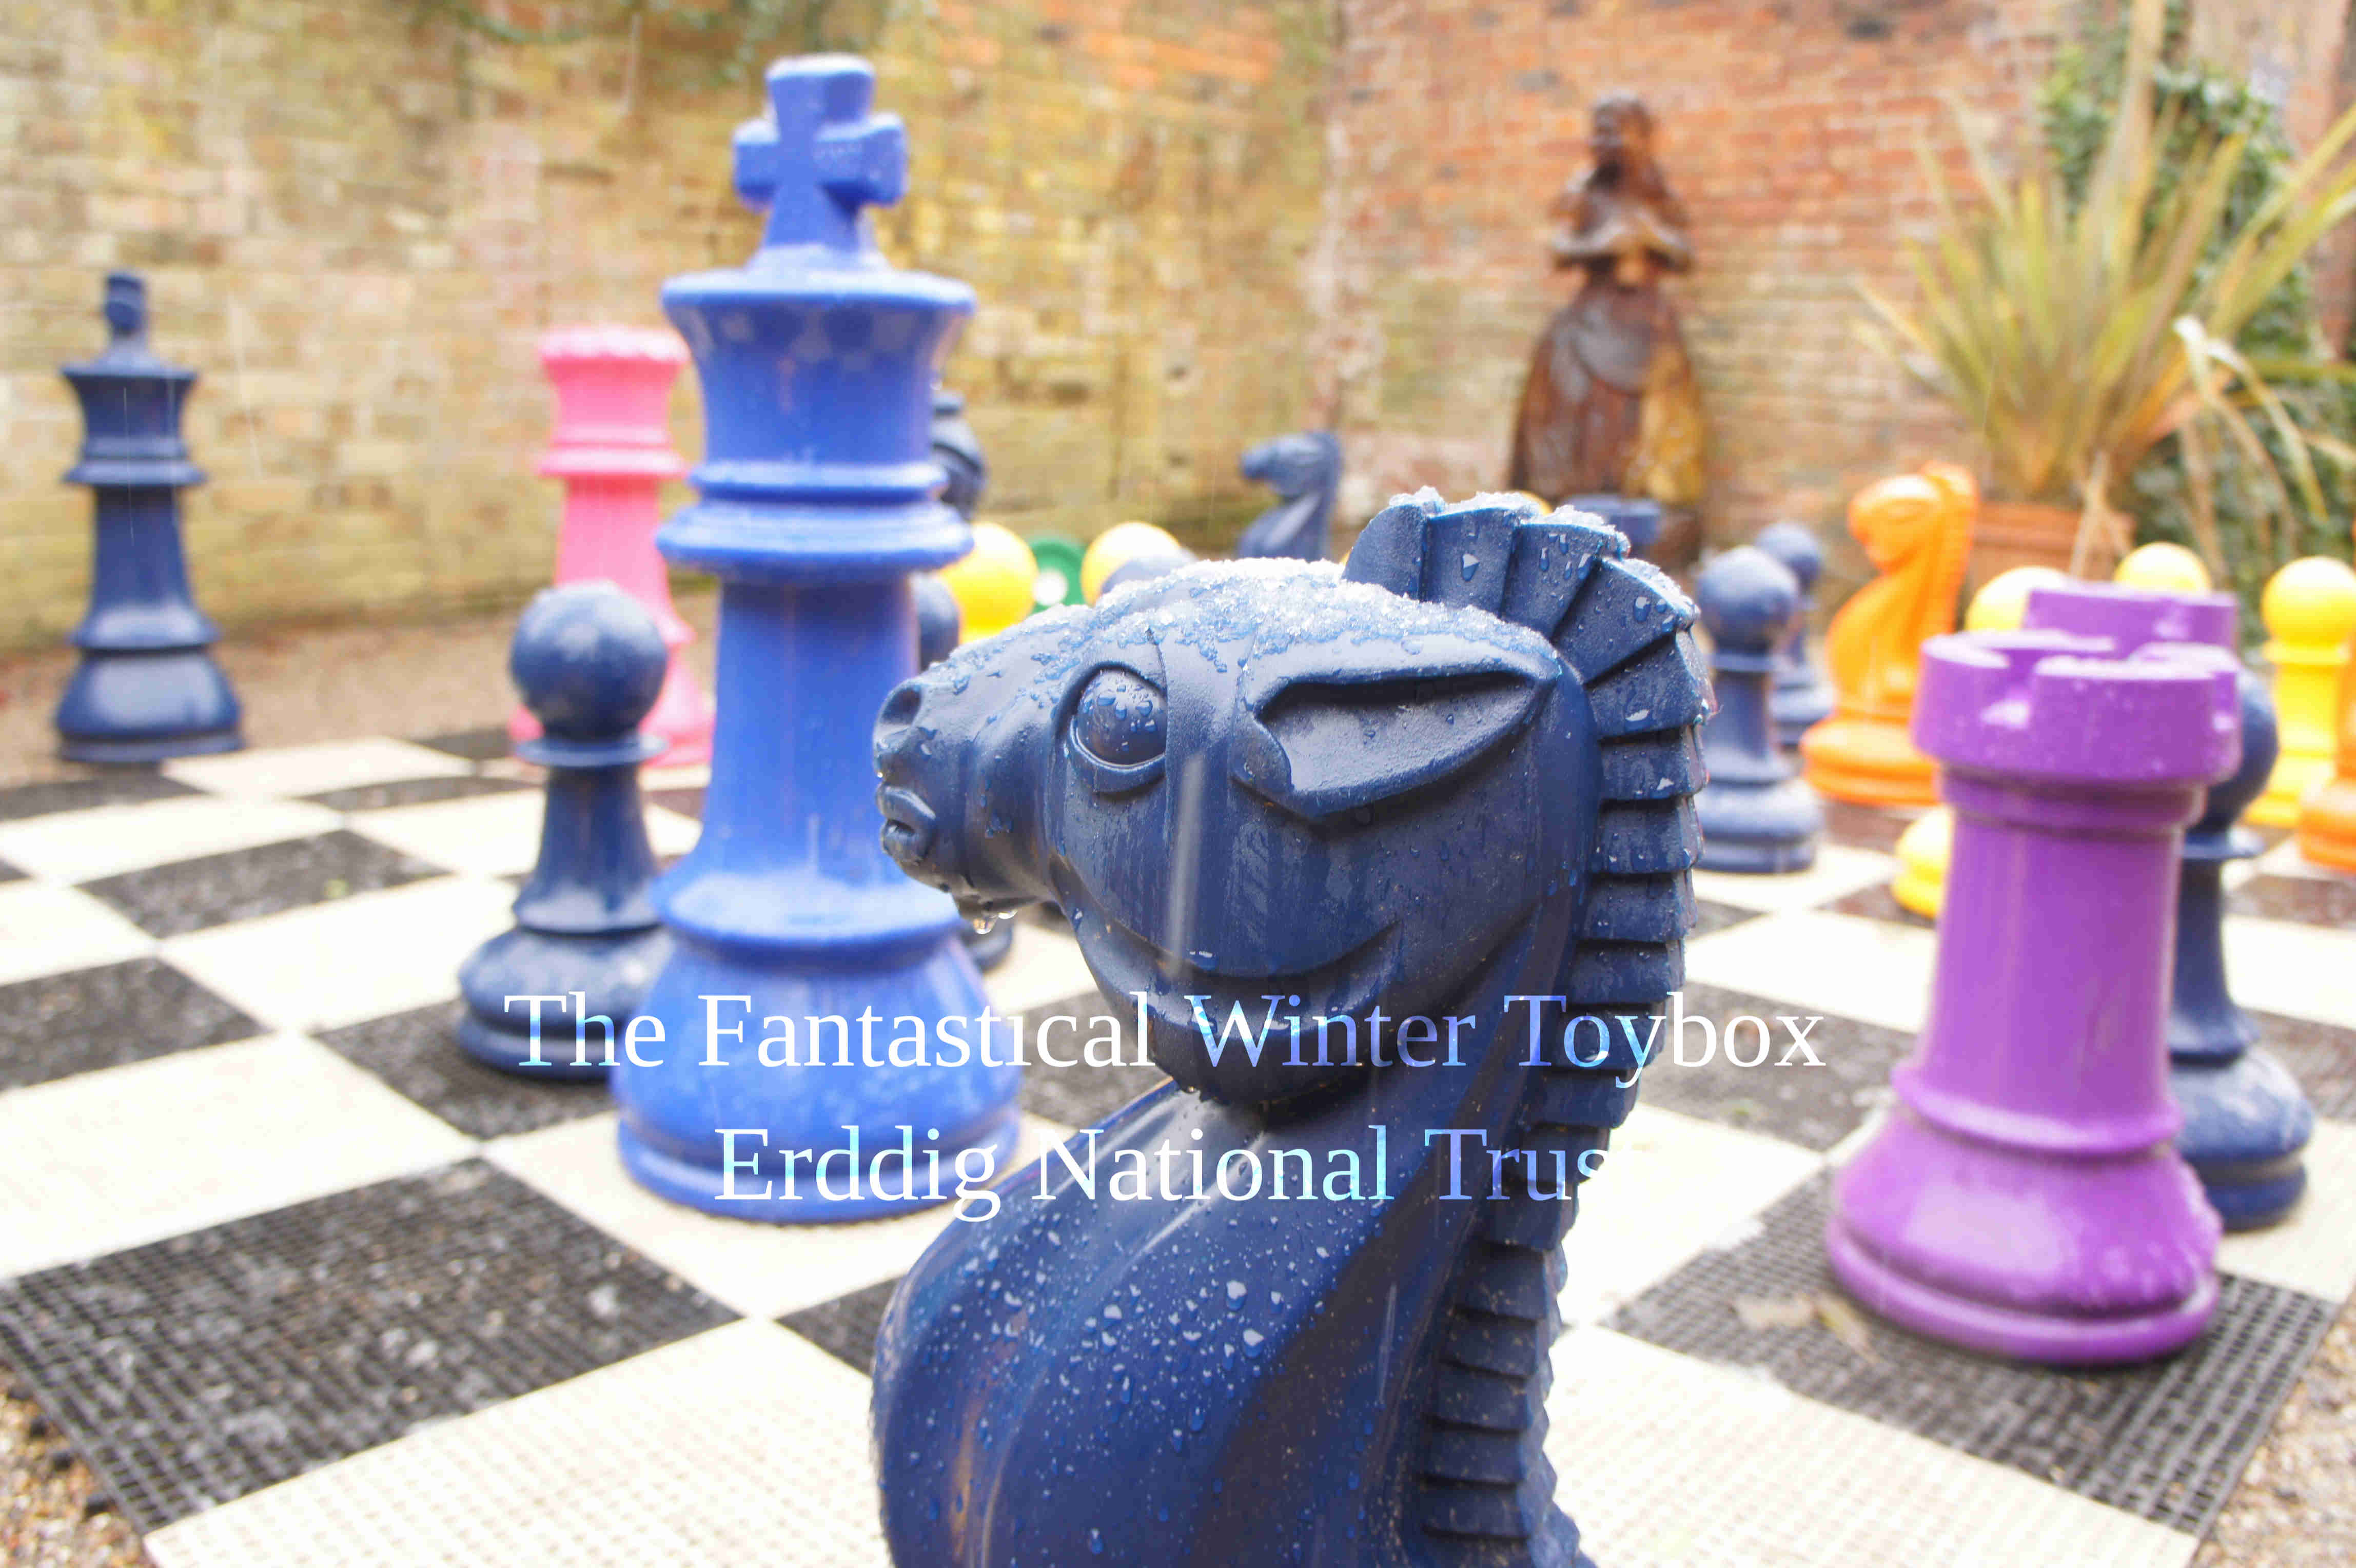 The Fantastical Winter Toybox at Erddig National Trust